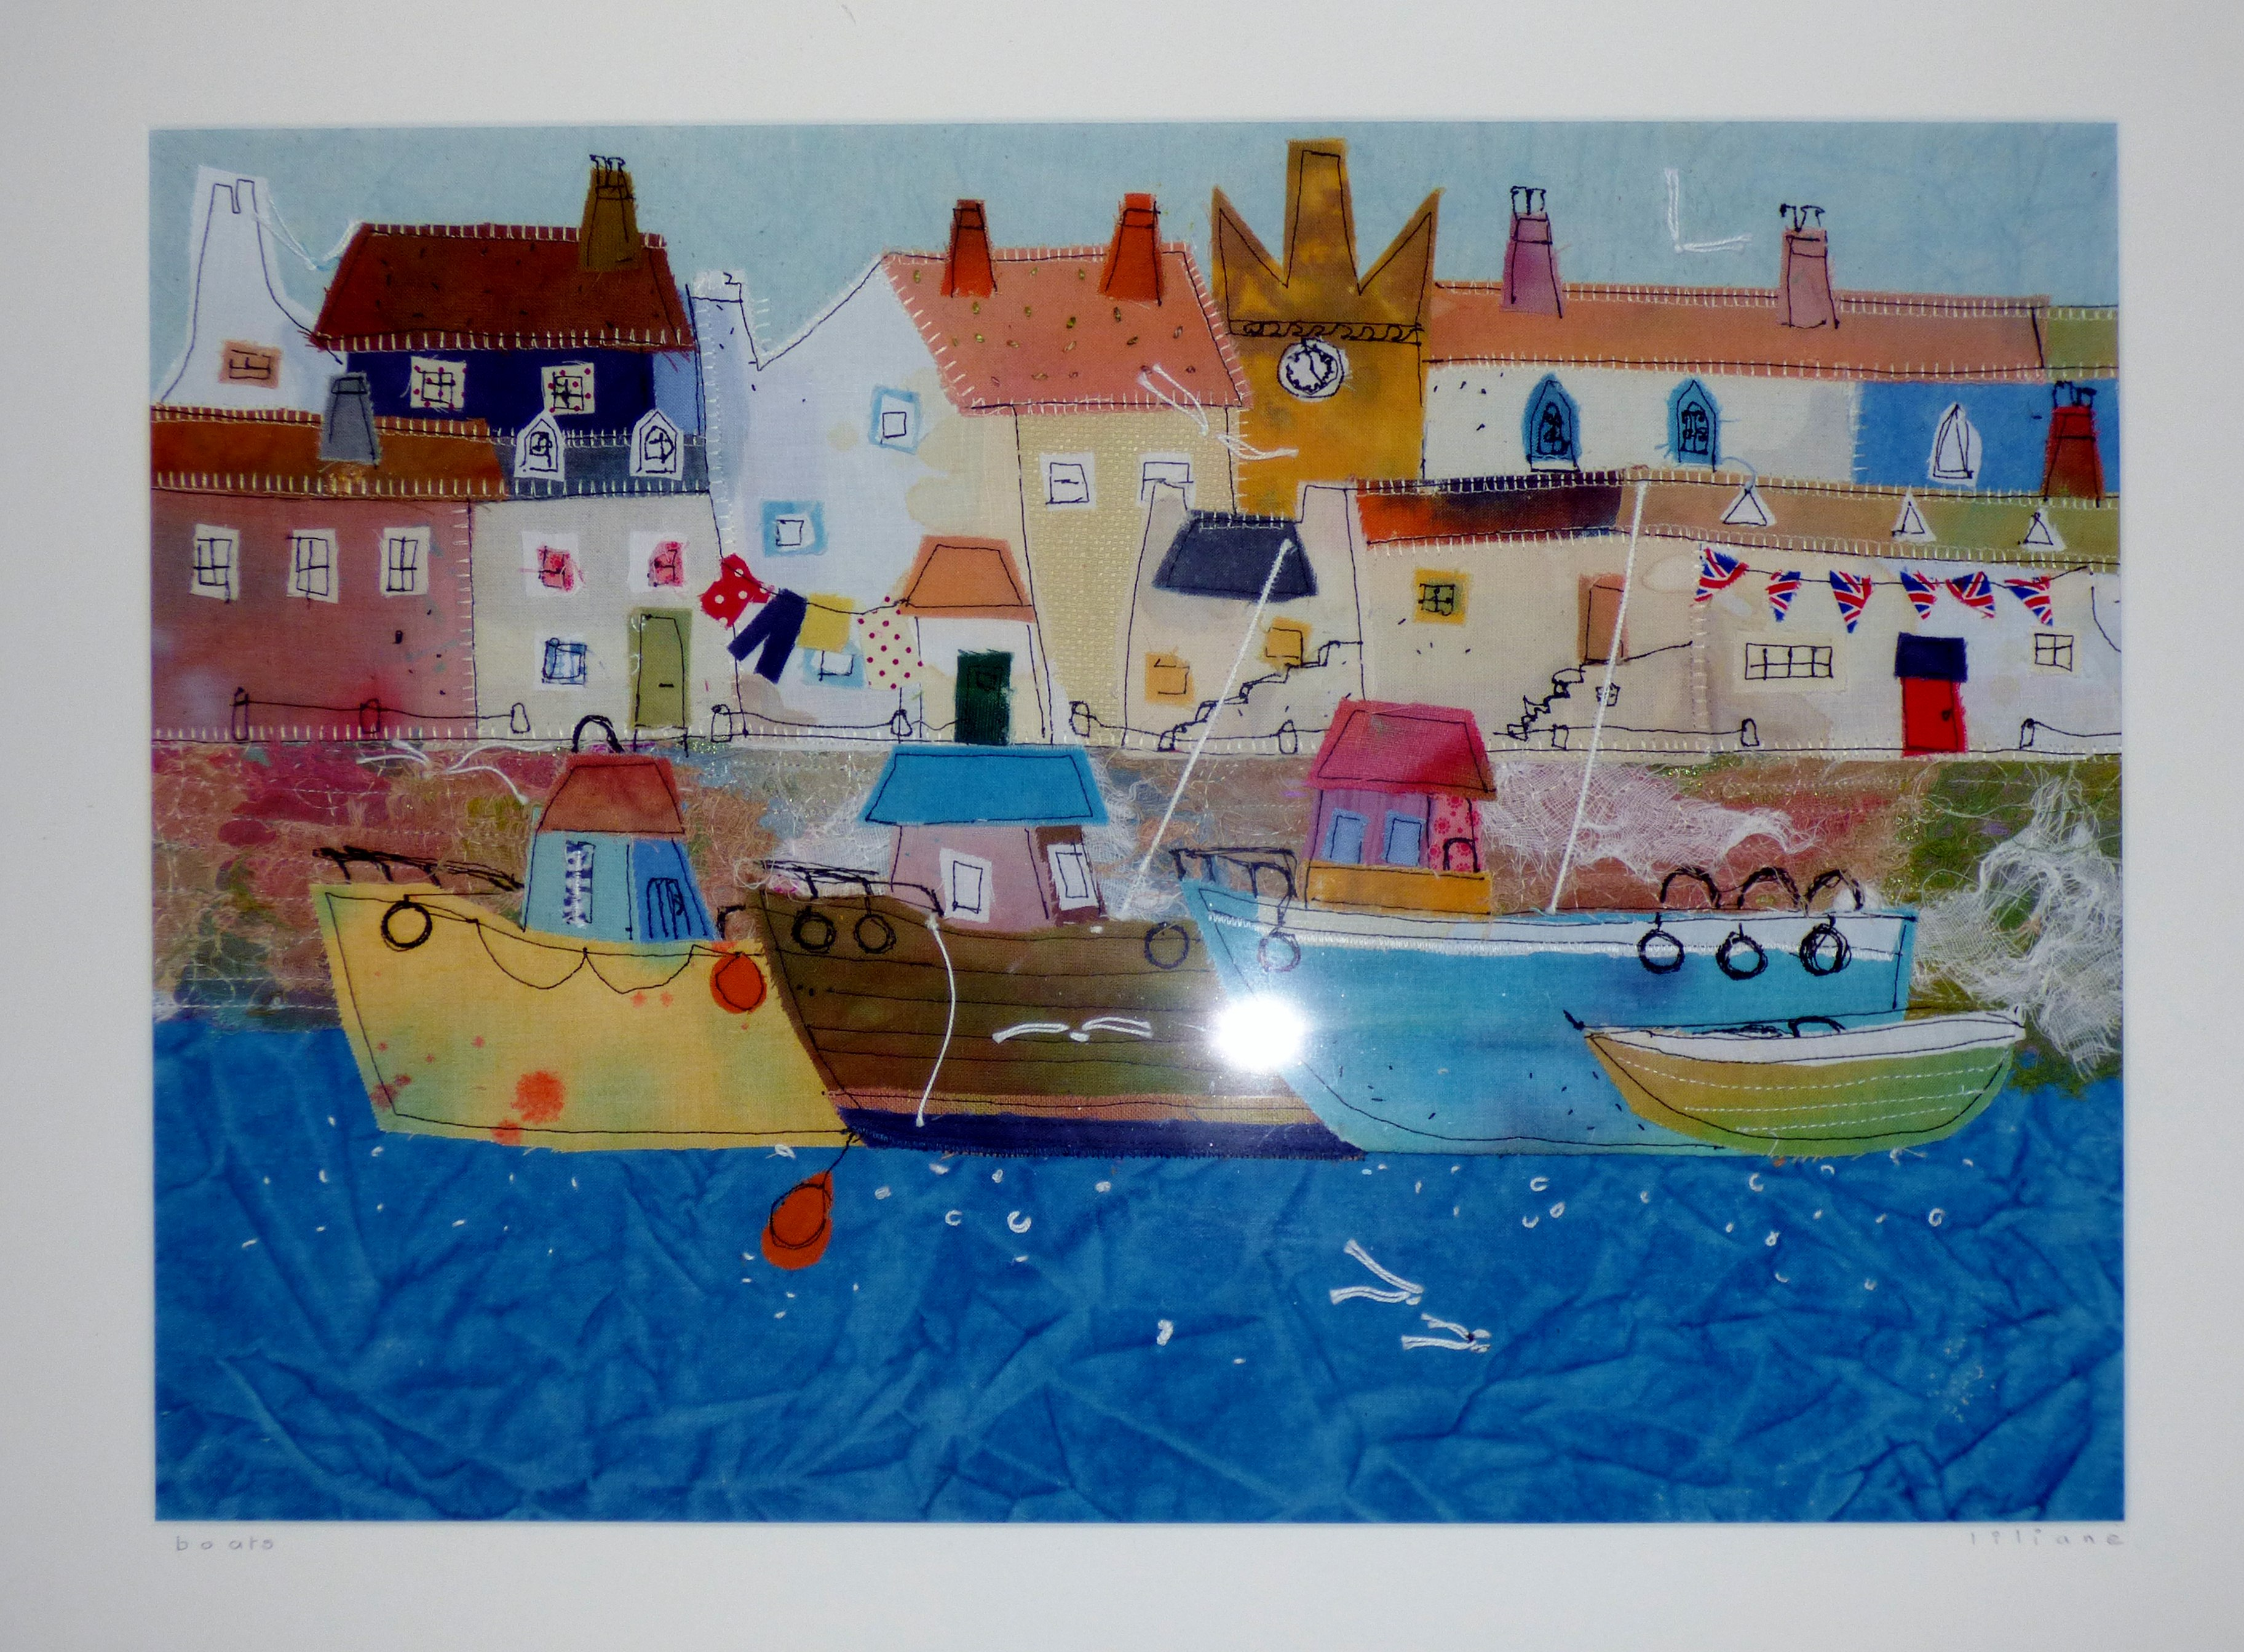 BOATS by Liliane Taylor, stitched picture, Ten Plus @ The Atkinson, 2018